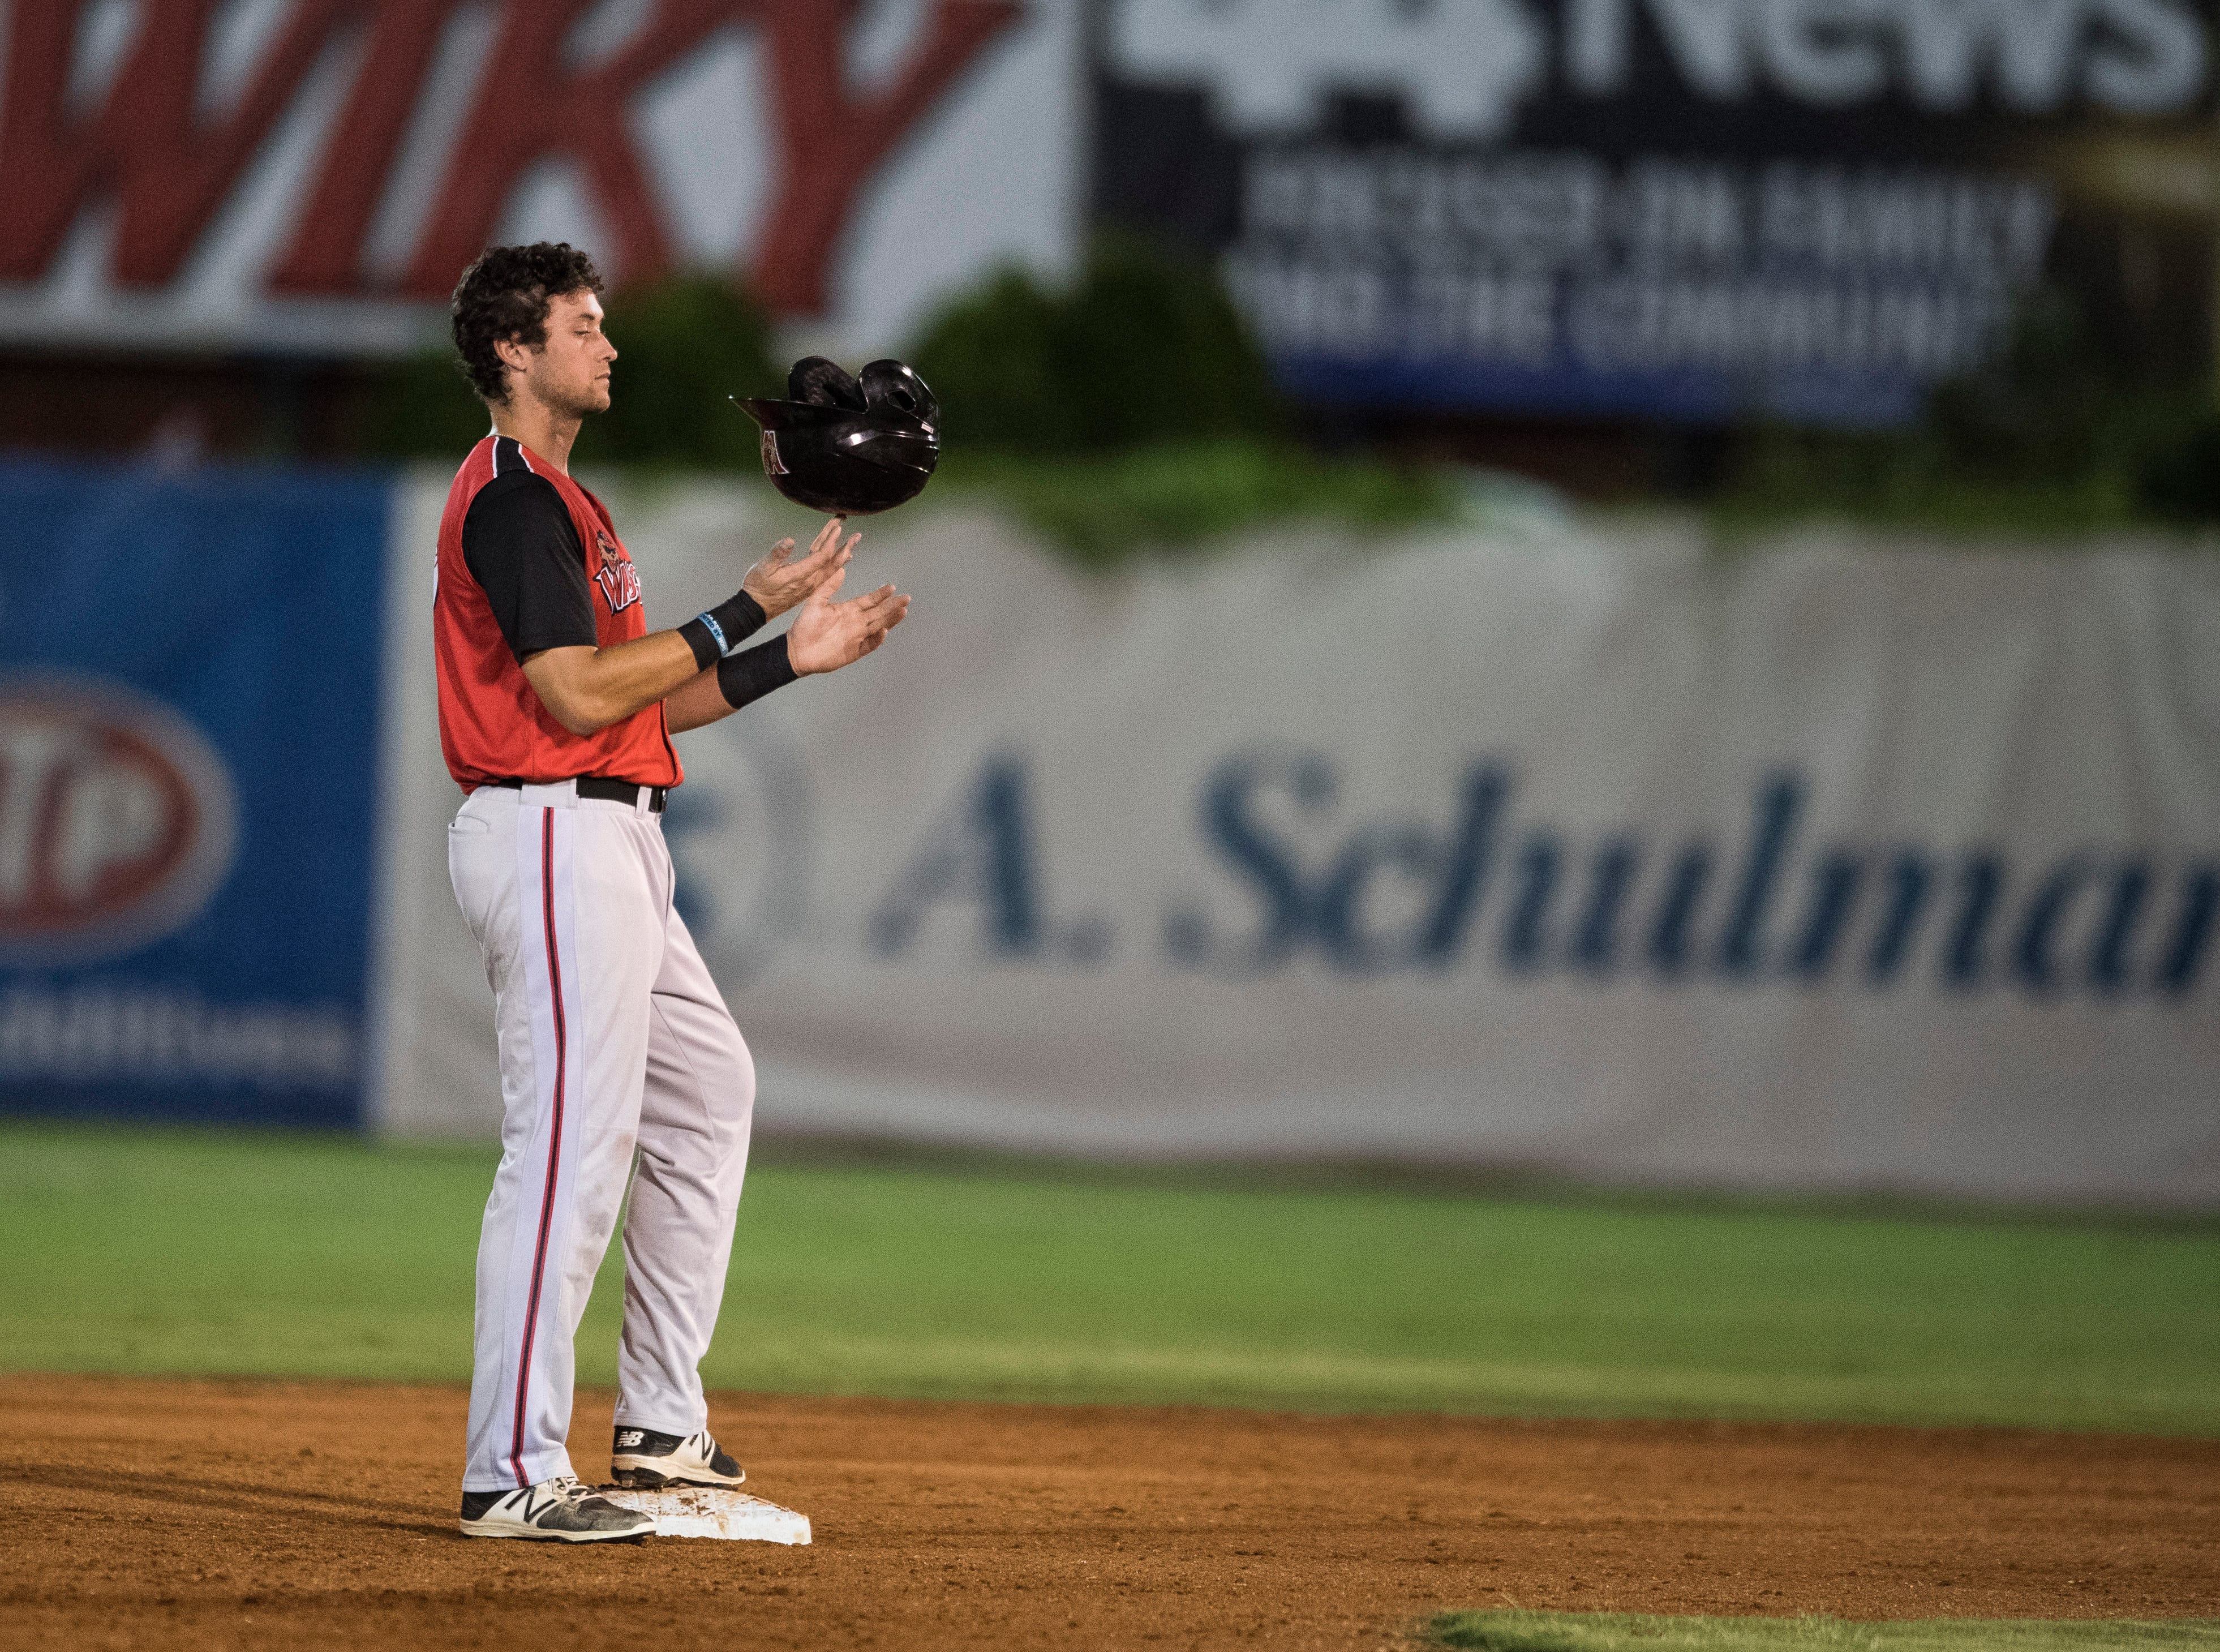 Washington's Roman Collins (19) spins his batting helmet on his figure as he waits on second base while the Otters switch pitchers during game one of the Frontier League Division Series at Bosse Field against the Evansville Otters Tuesday, September 4, 2018.